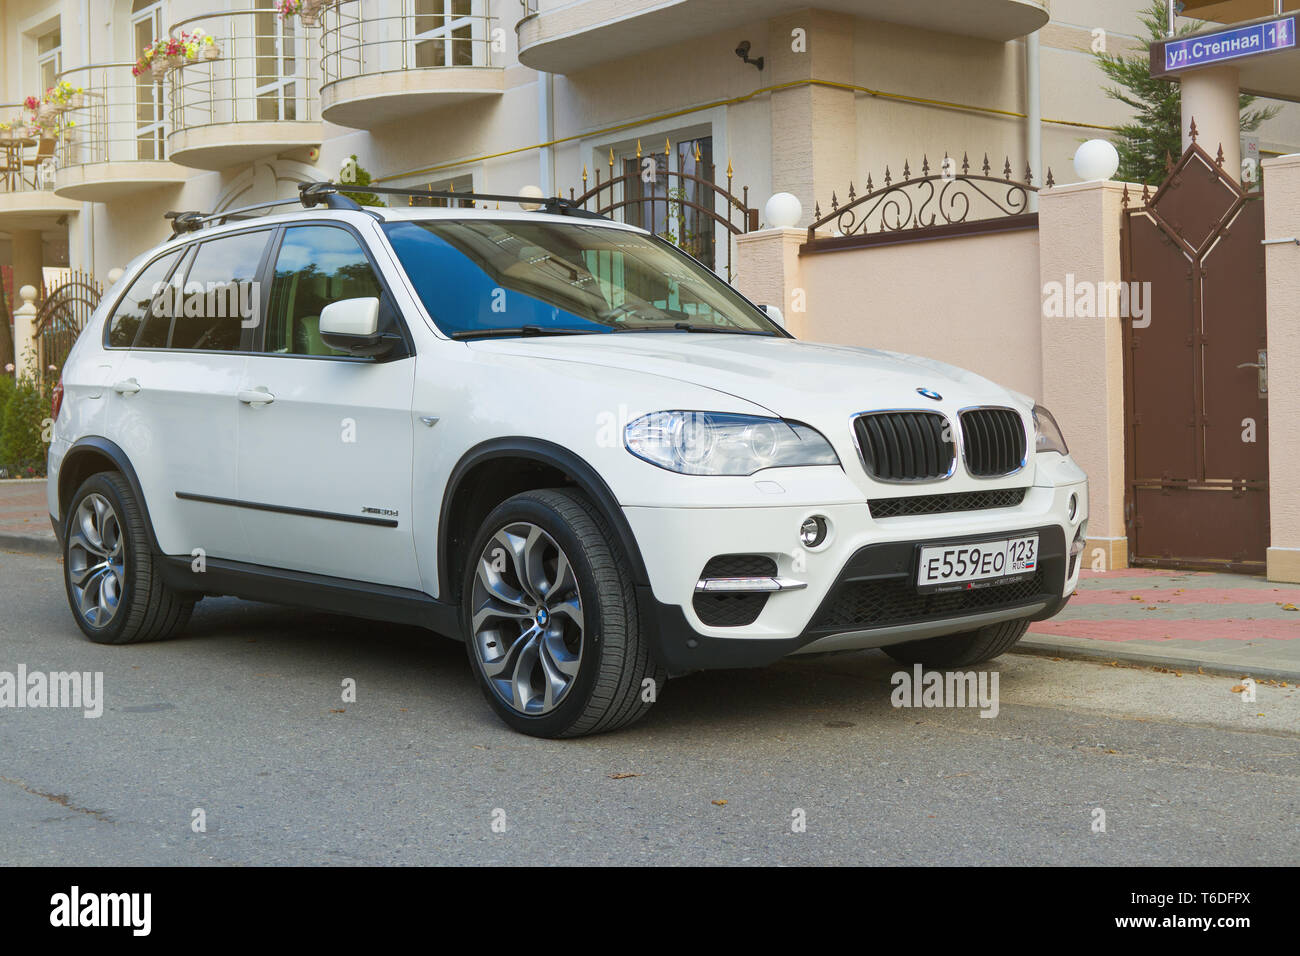 Novorossiisk, Russia - November 26, 2017: New white BMW x5 parked near house in street of the city.  - Stock Image